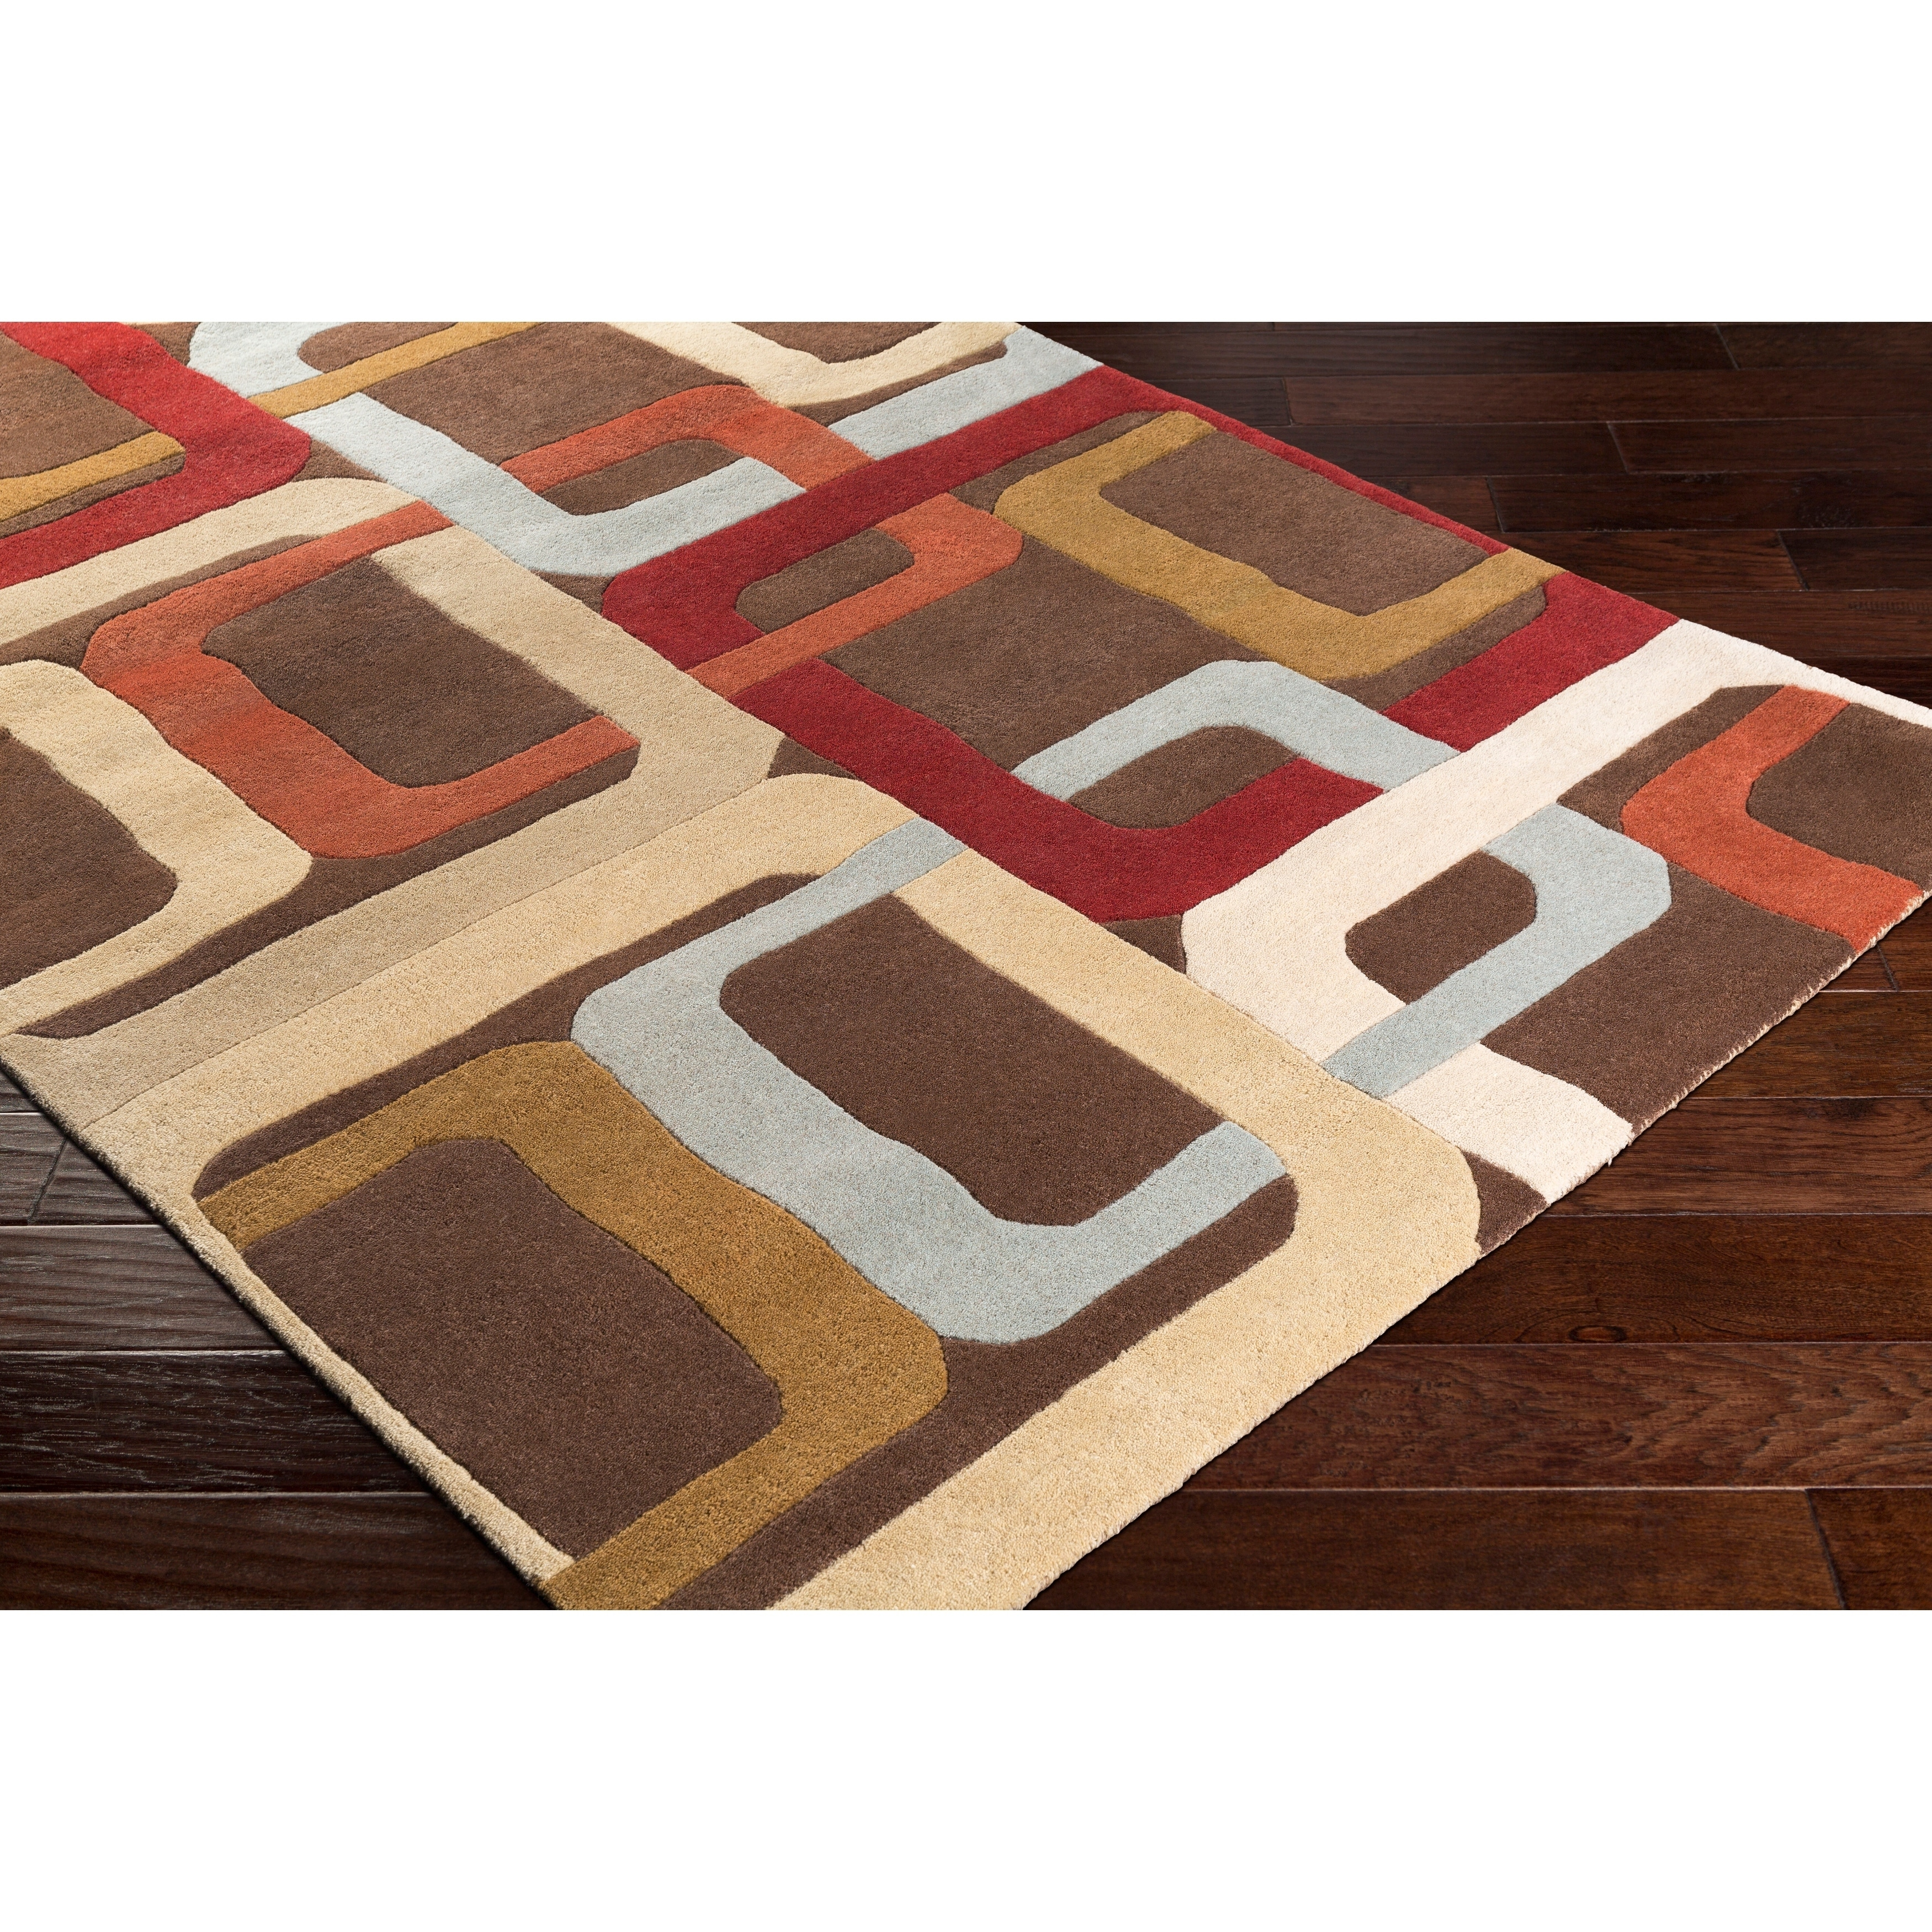 Hand Tufted Brown Contemporary Multi Colored Square Burla Wool Geometric Area Rug 8 X 10 Kidney Overstock 6511546